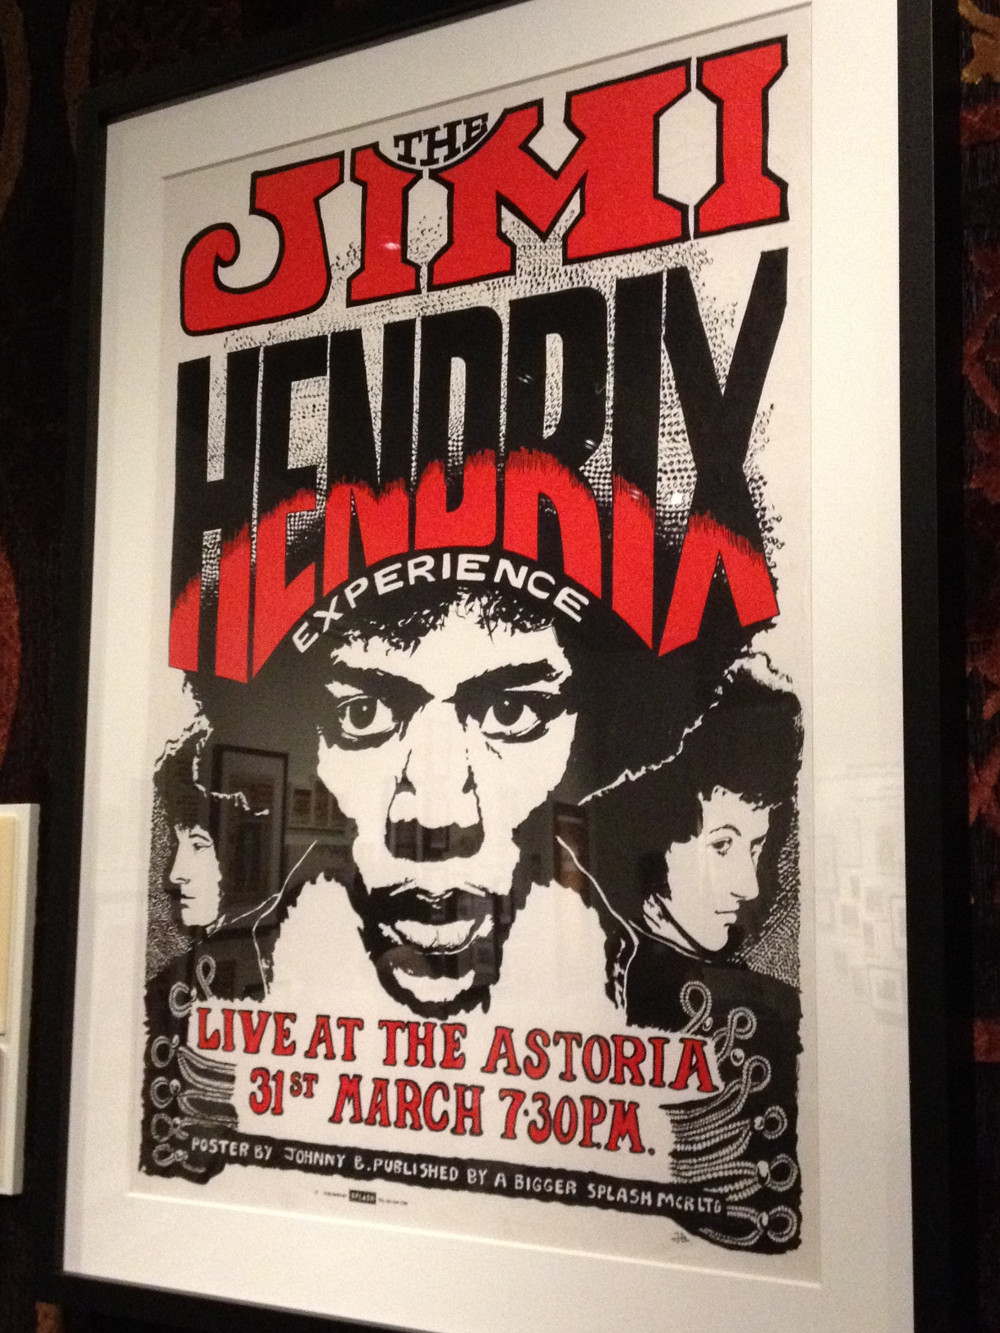 Hendrix Hits London, EMP Museum - Double-Barrelled Travel